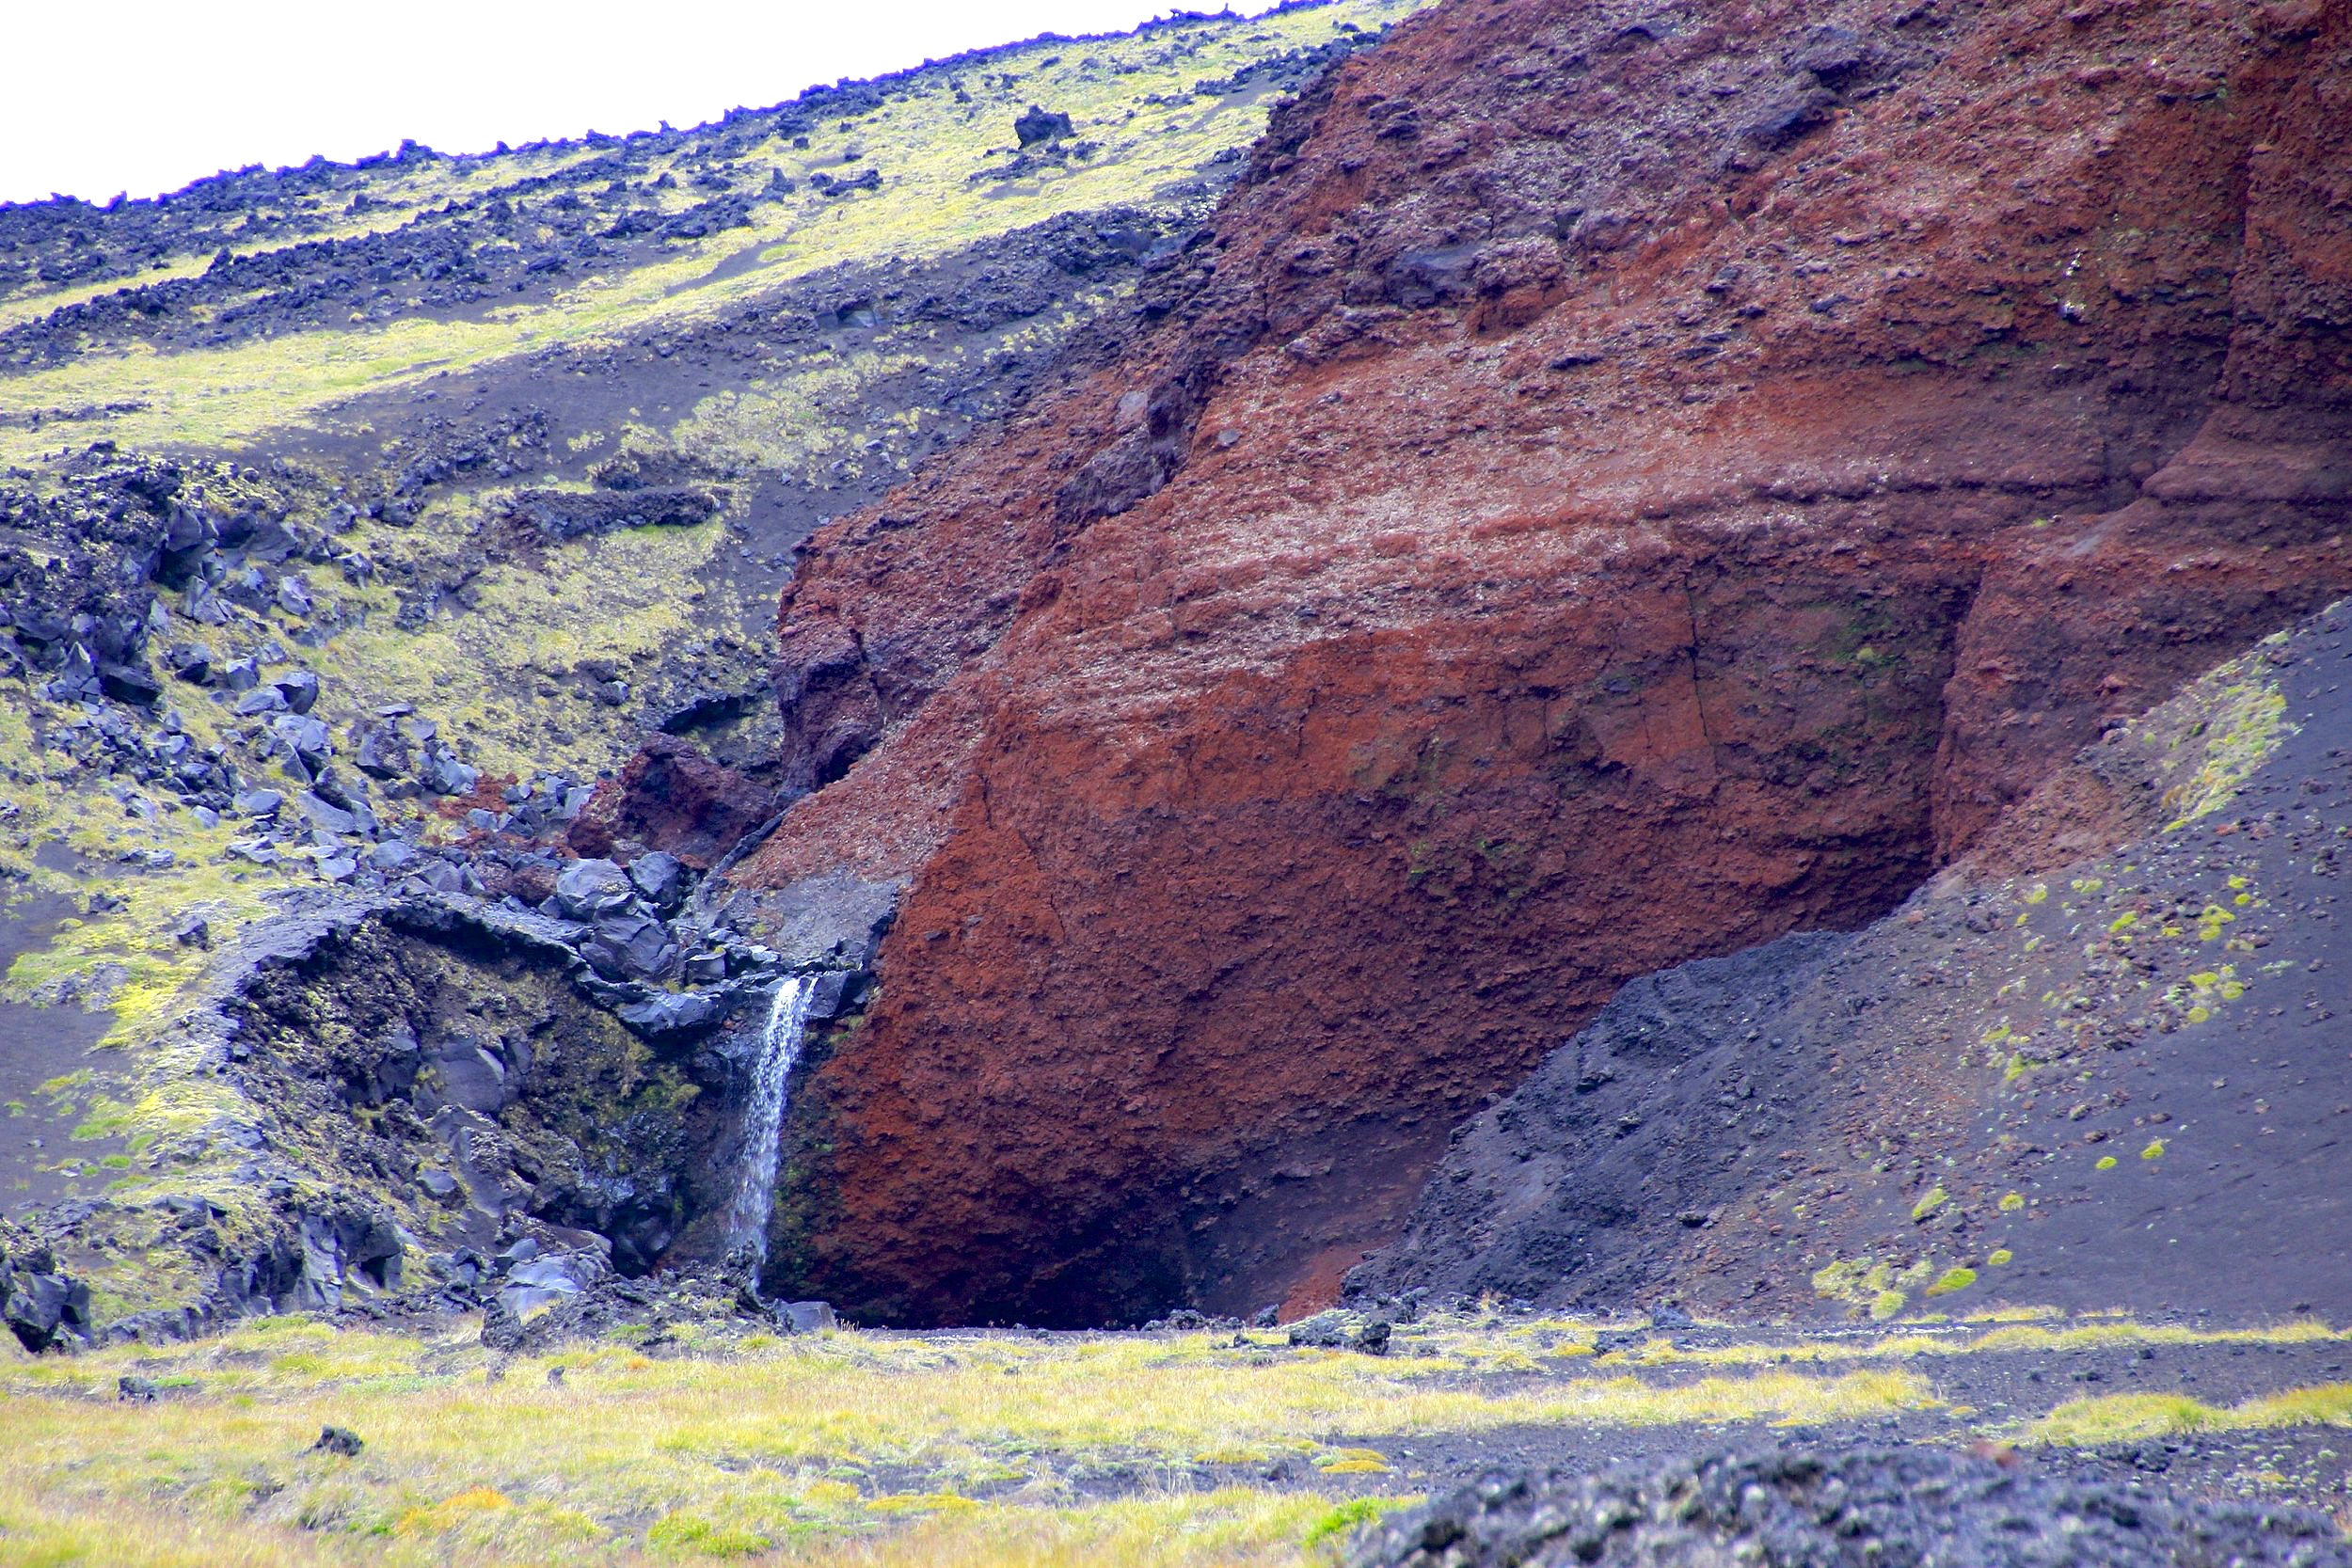 Small waterfall over red volcanic rock.